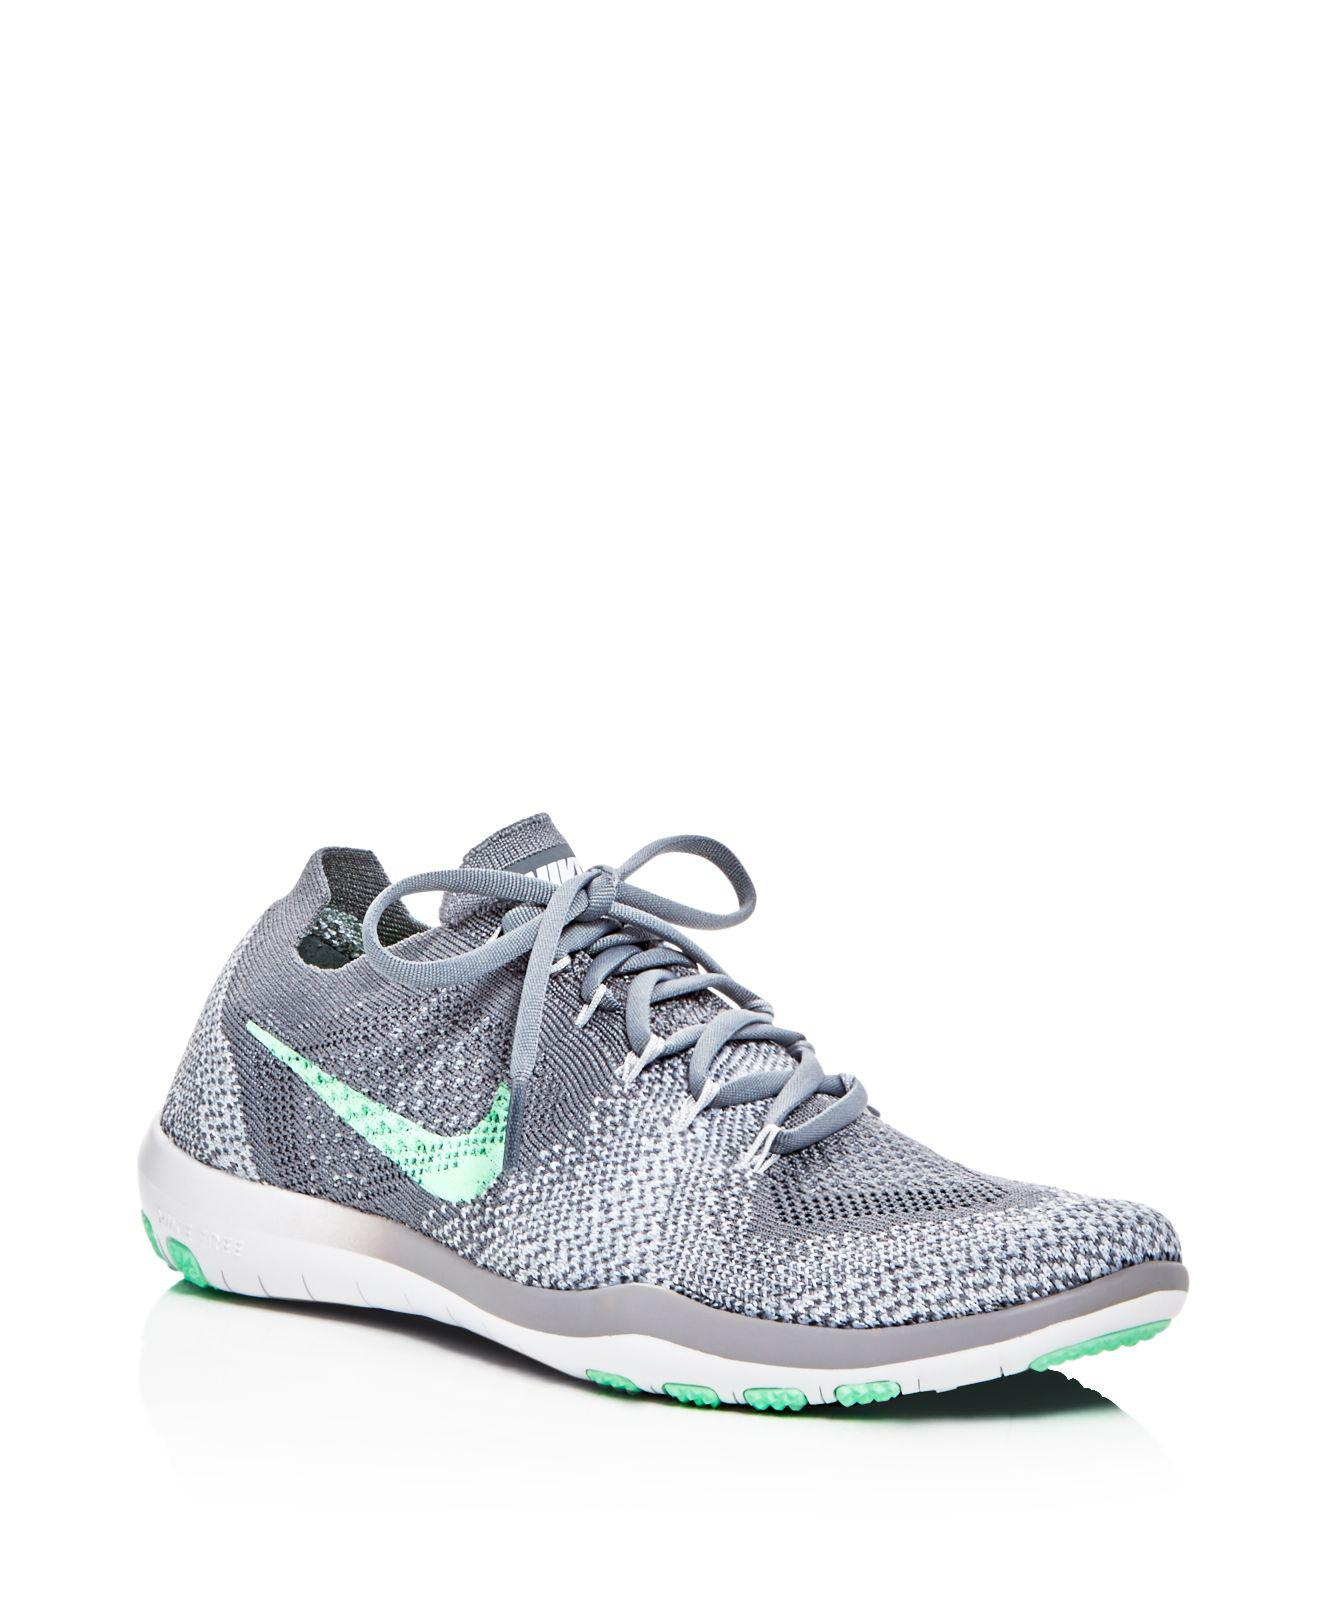 39c13ca7b nike-Cool-GrayArctic-GreenWhite-Womens -Free-Focus-Flyknit-2-Lace-Up-Sneakers.jpeg